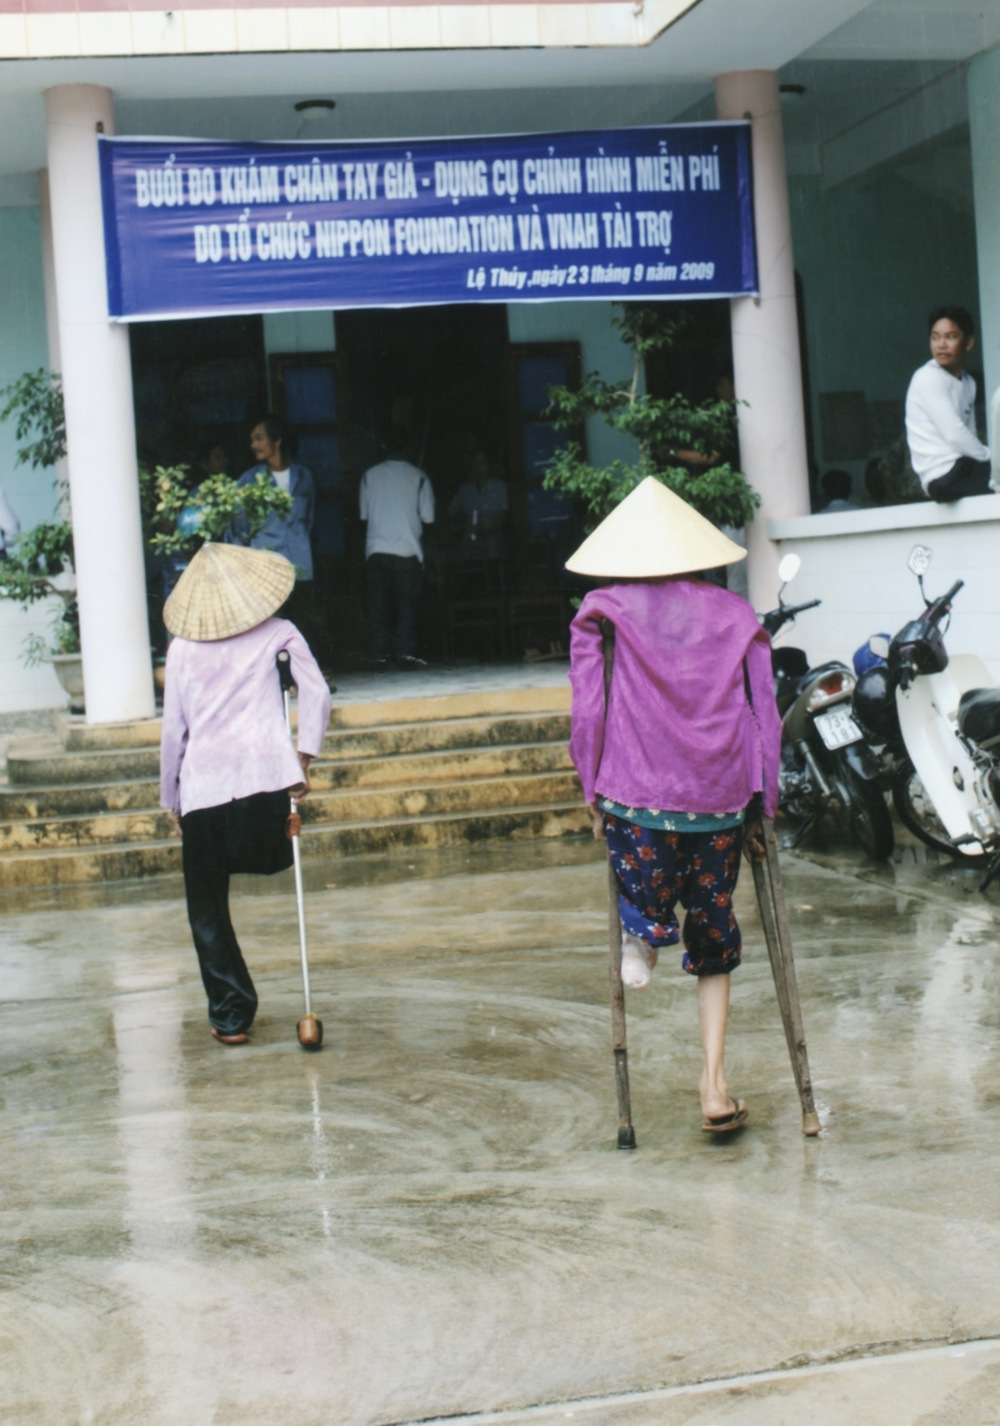 Prosthetics Outreach to Landmine Victims in Quang Dinh Province 2009 - 01.jpeg